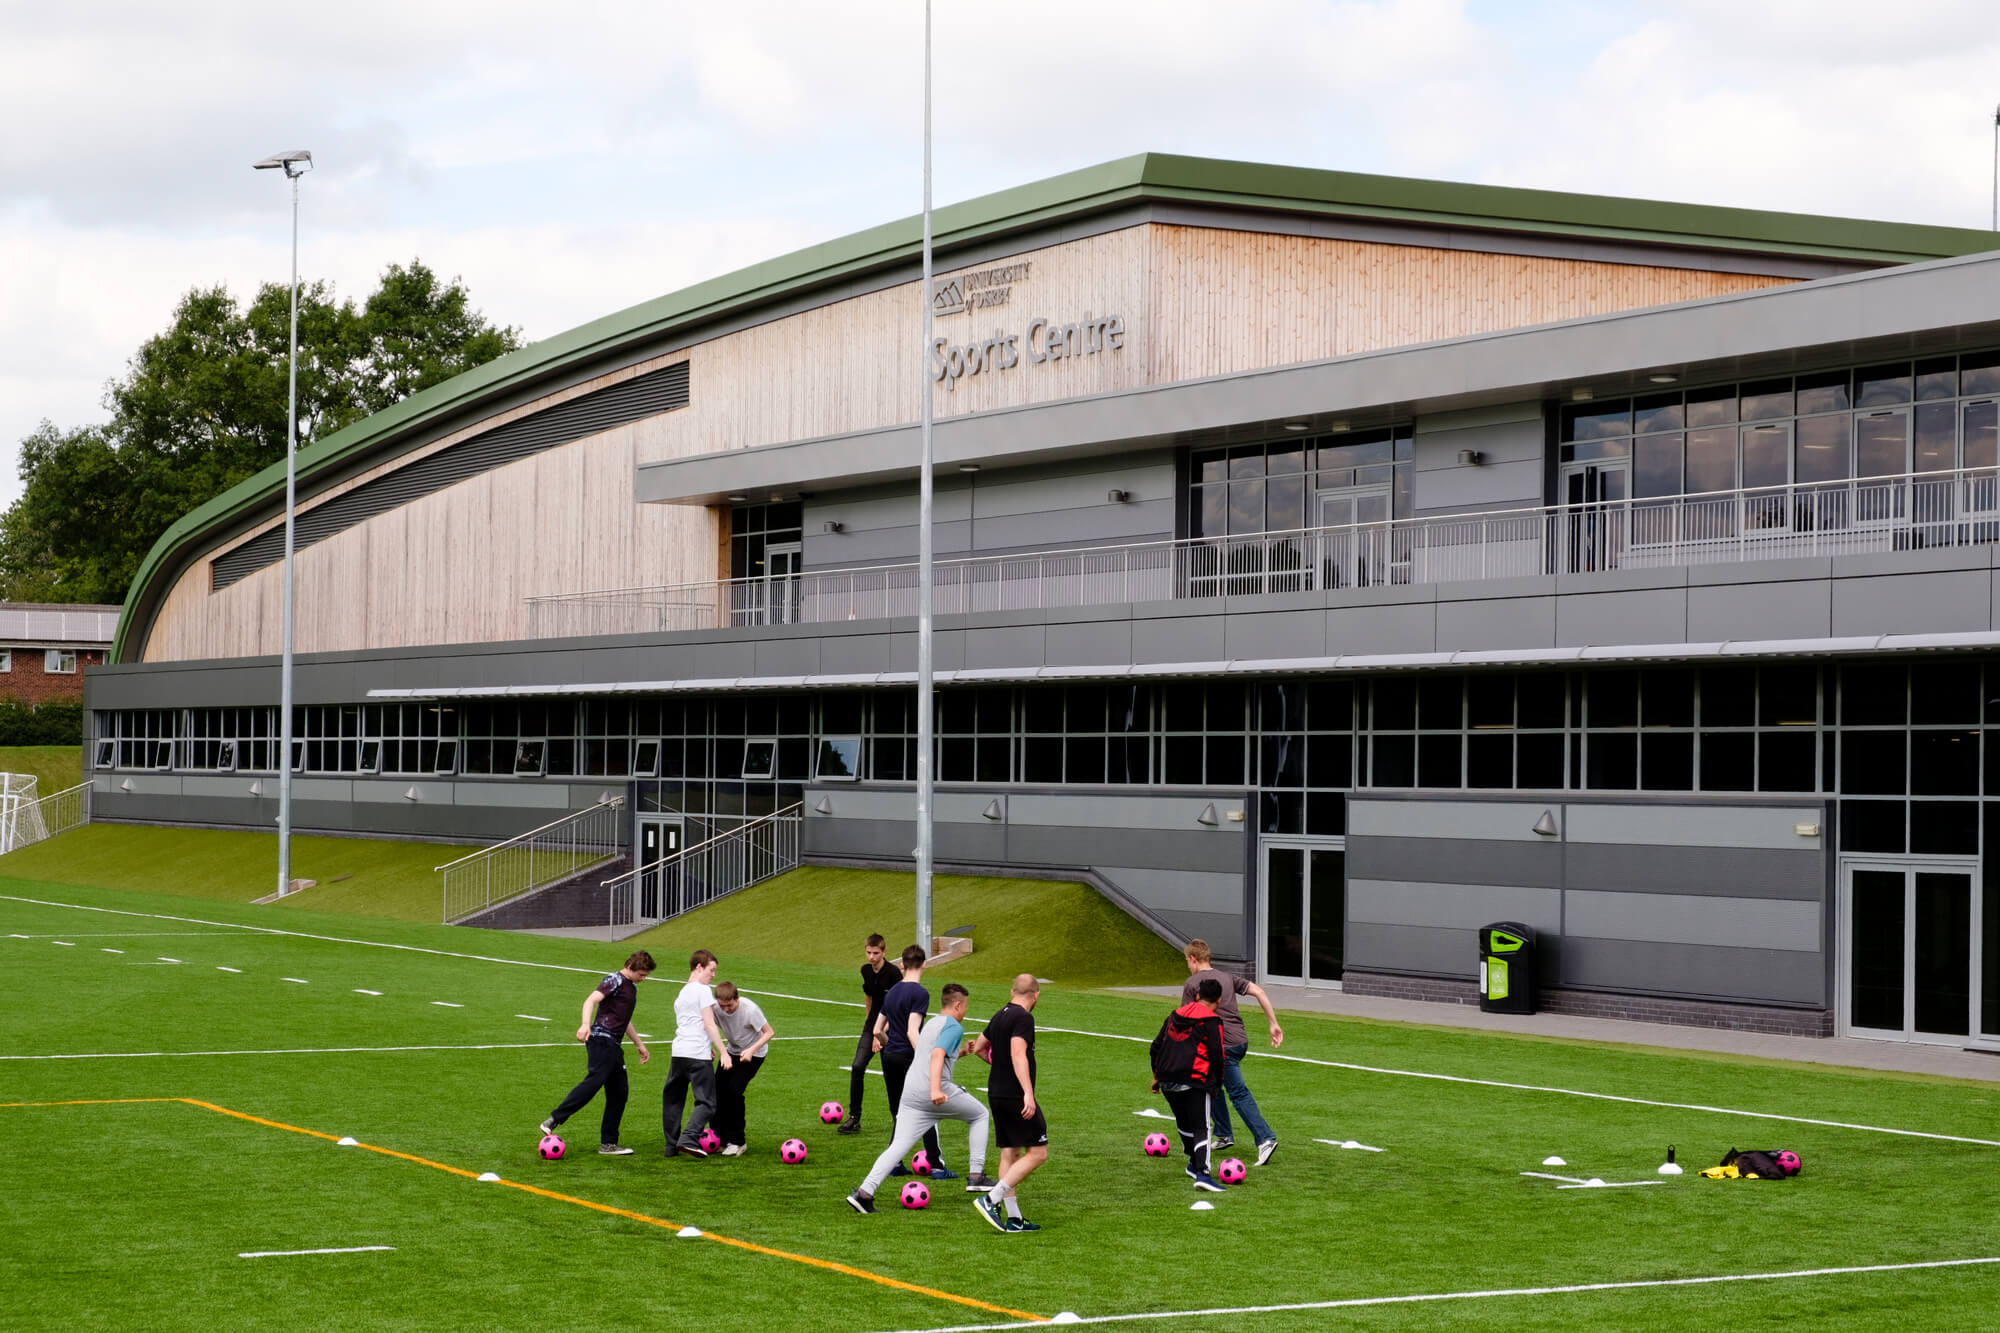 Students learning football skills with the University of Derby's sport centre in the background.